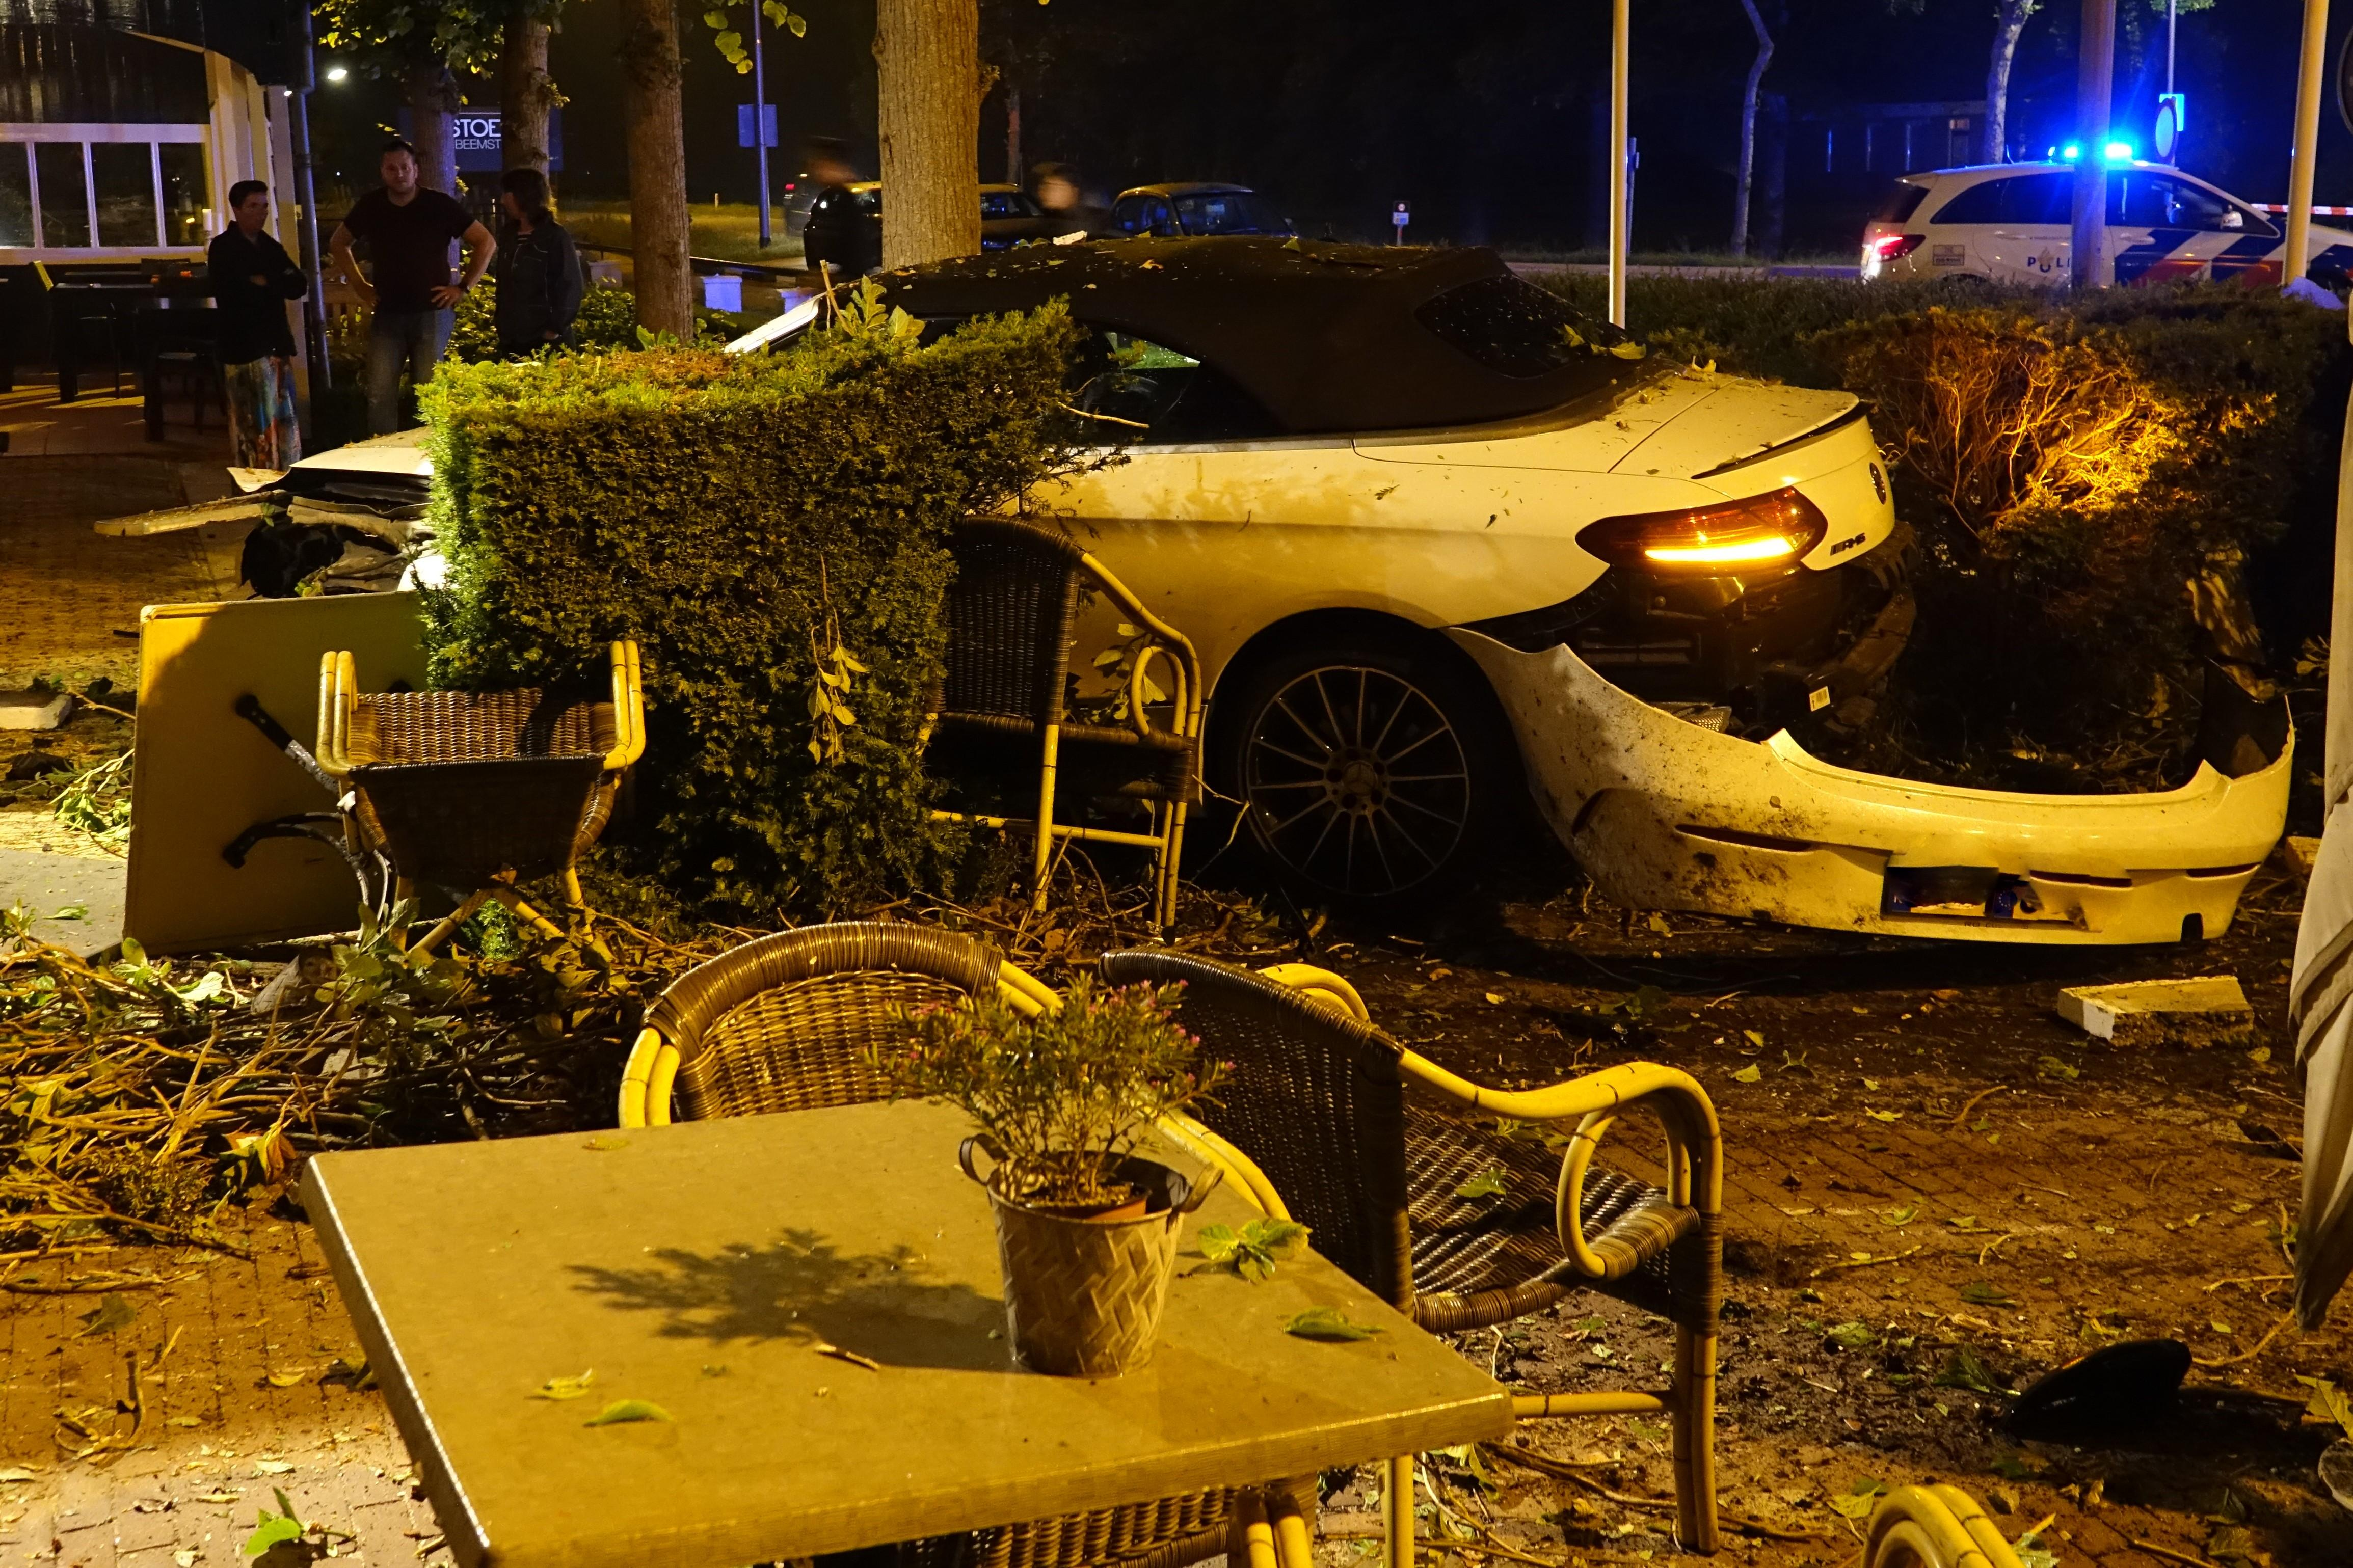 Auto crasht op terras van restaurant in Noordbeemster [video]